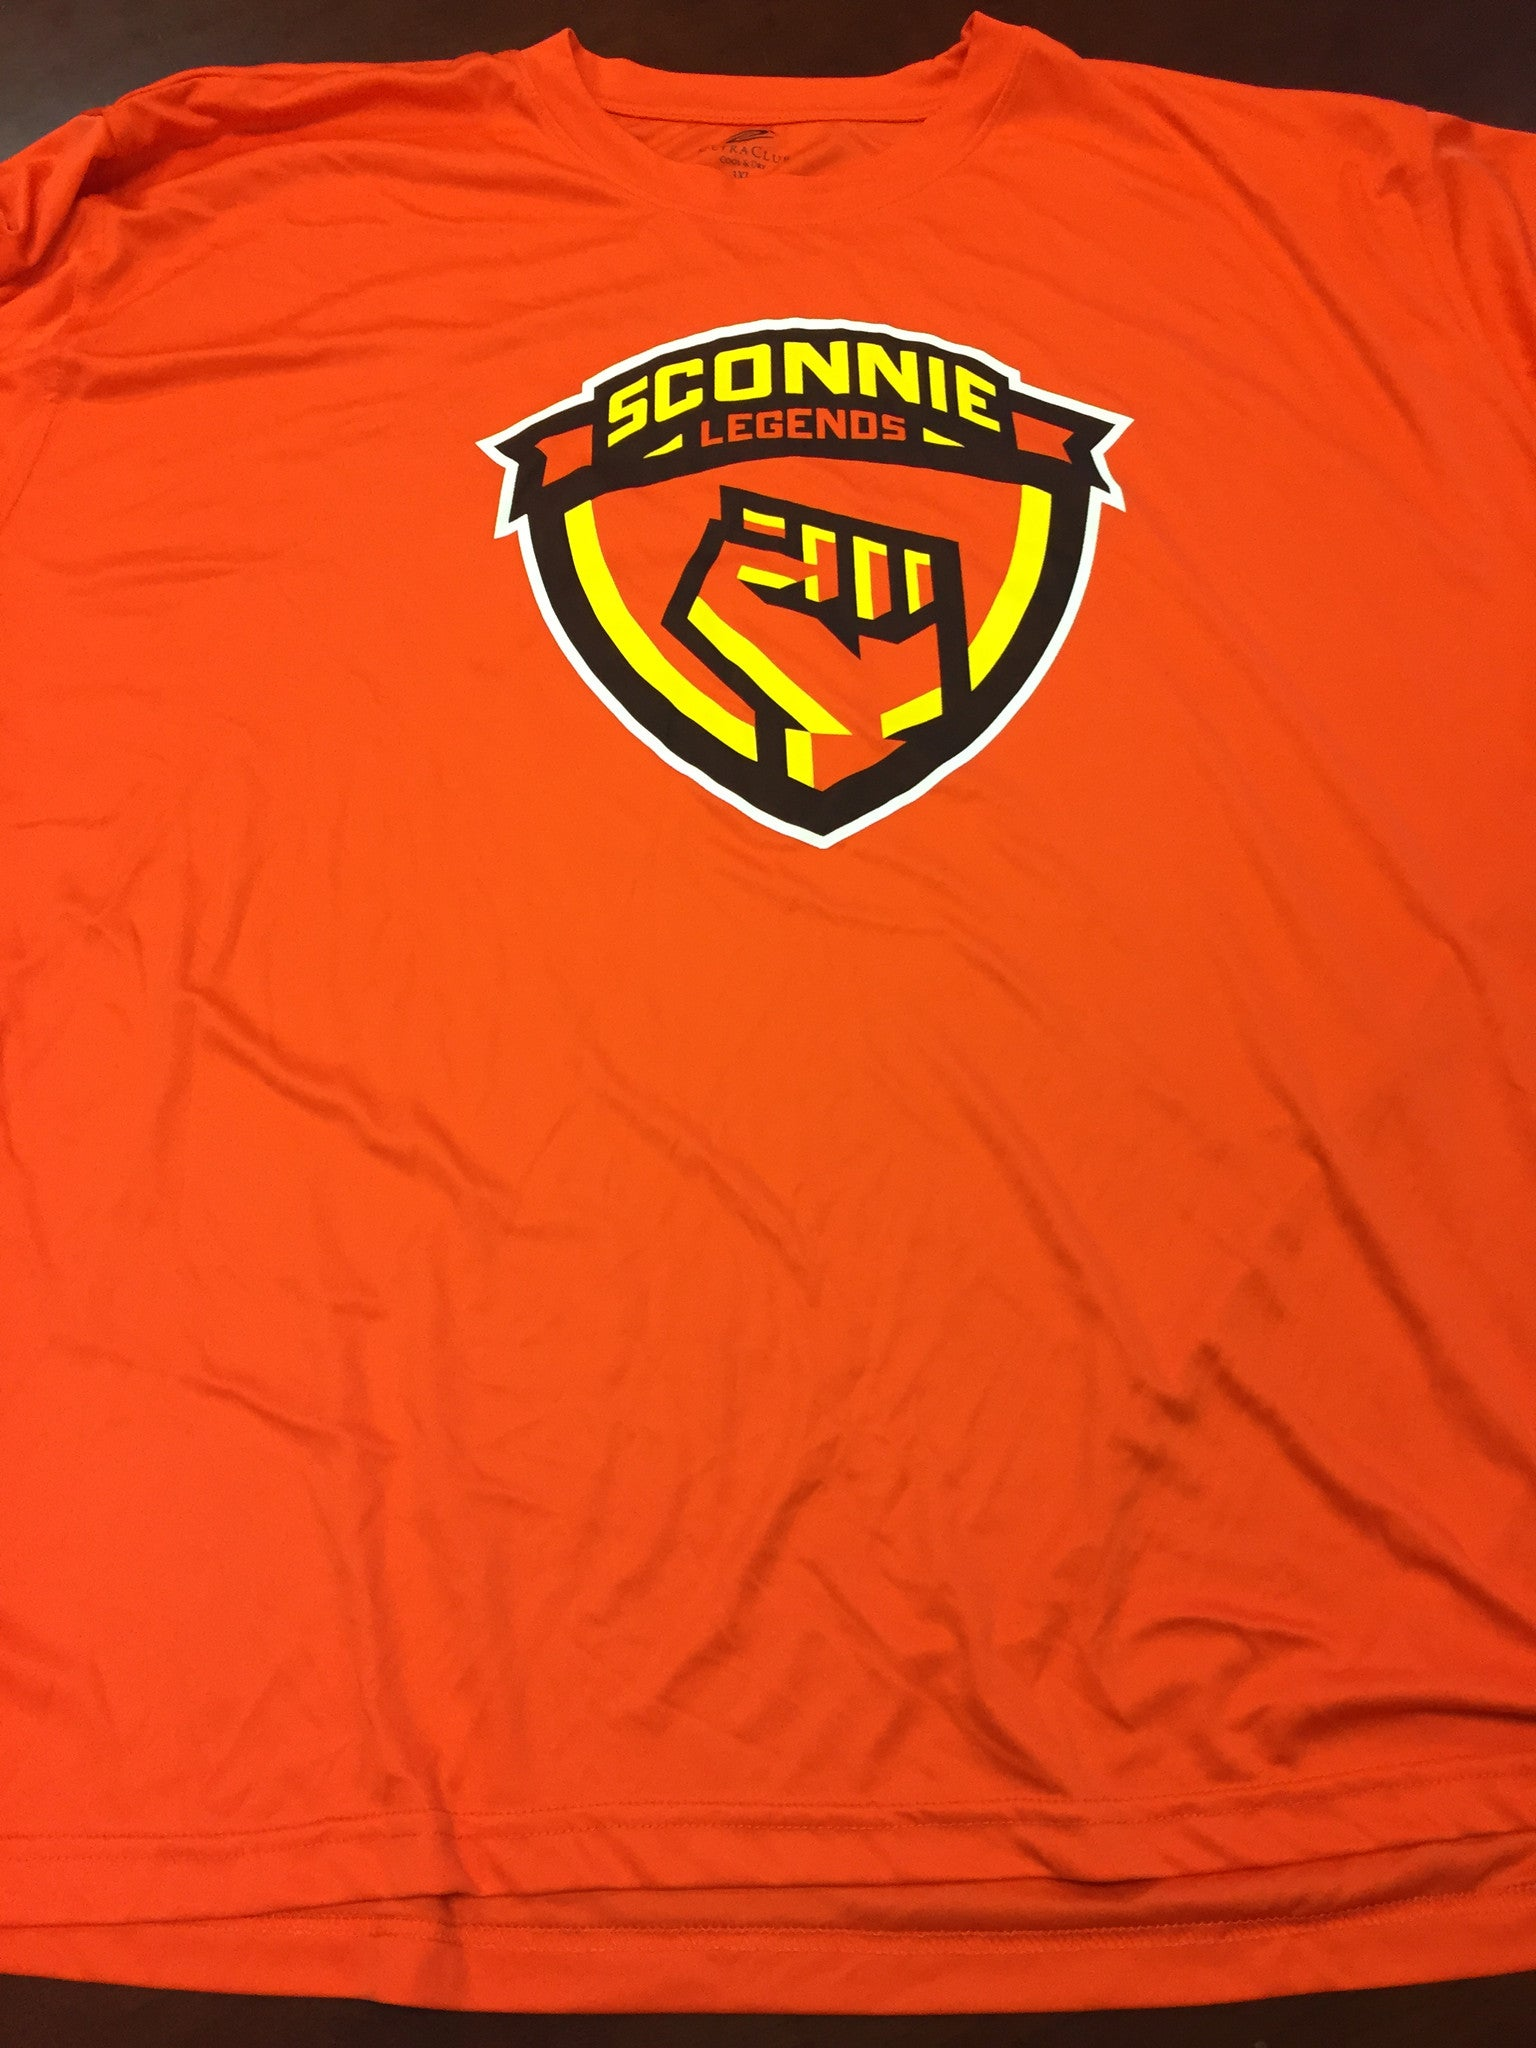 Sconnie Legends - 2014 Official Team Jersey & Warm-Up T